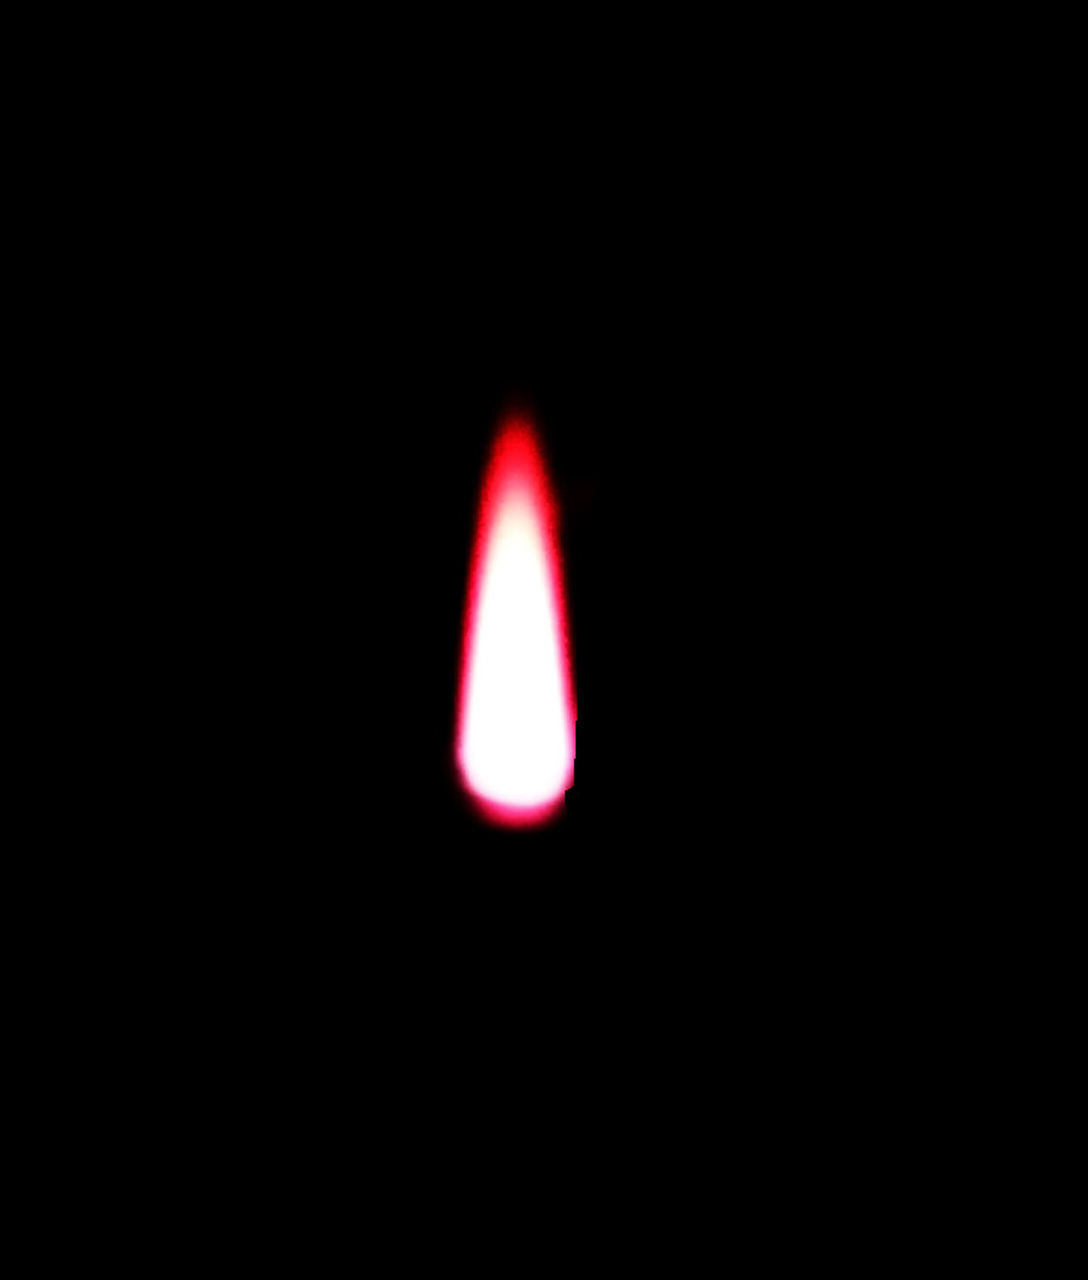 red, no people, close-up, night, black background, technology, nature, astronomy, outdoors, sky